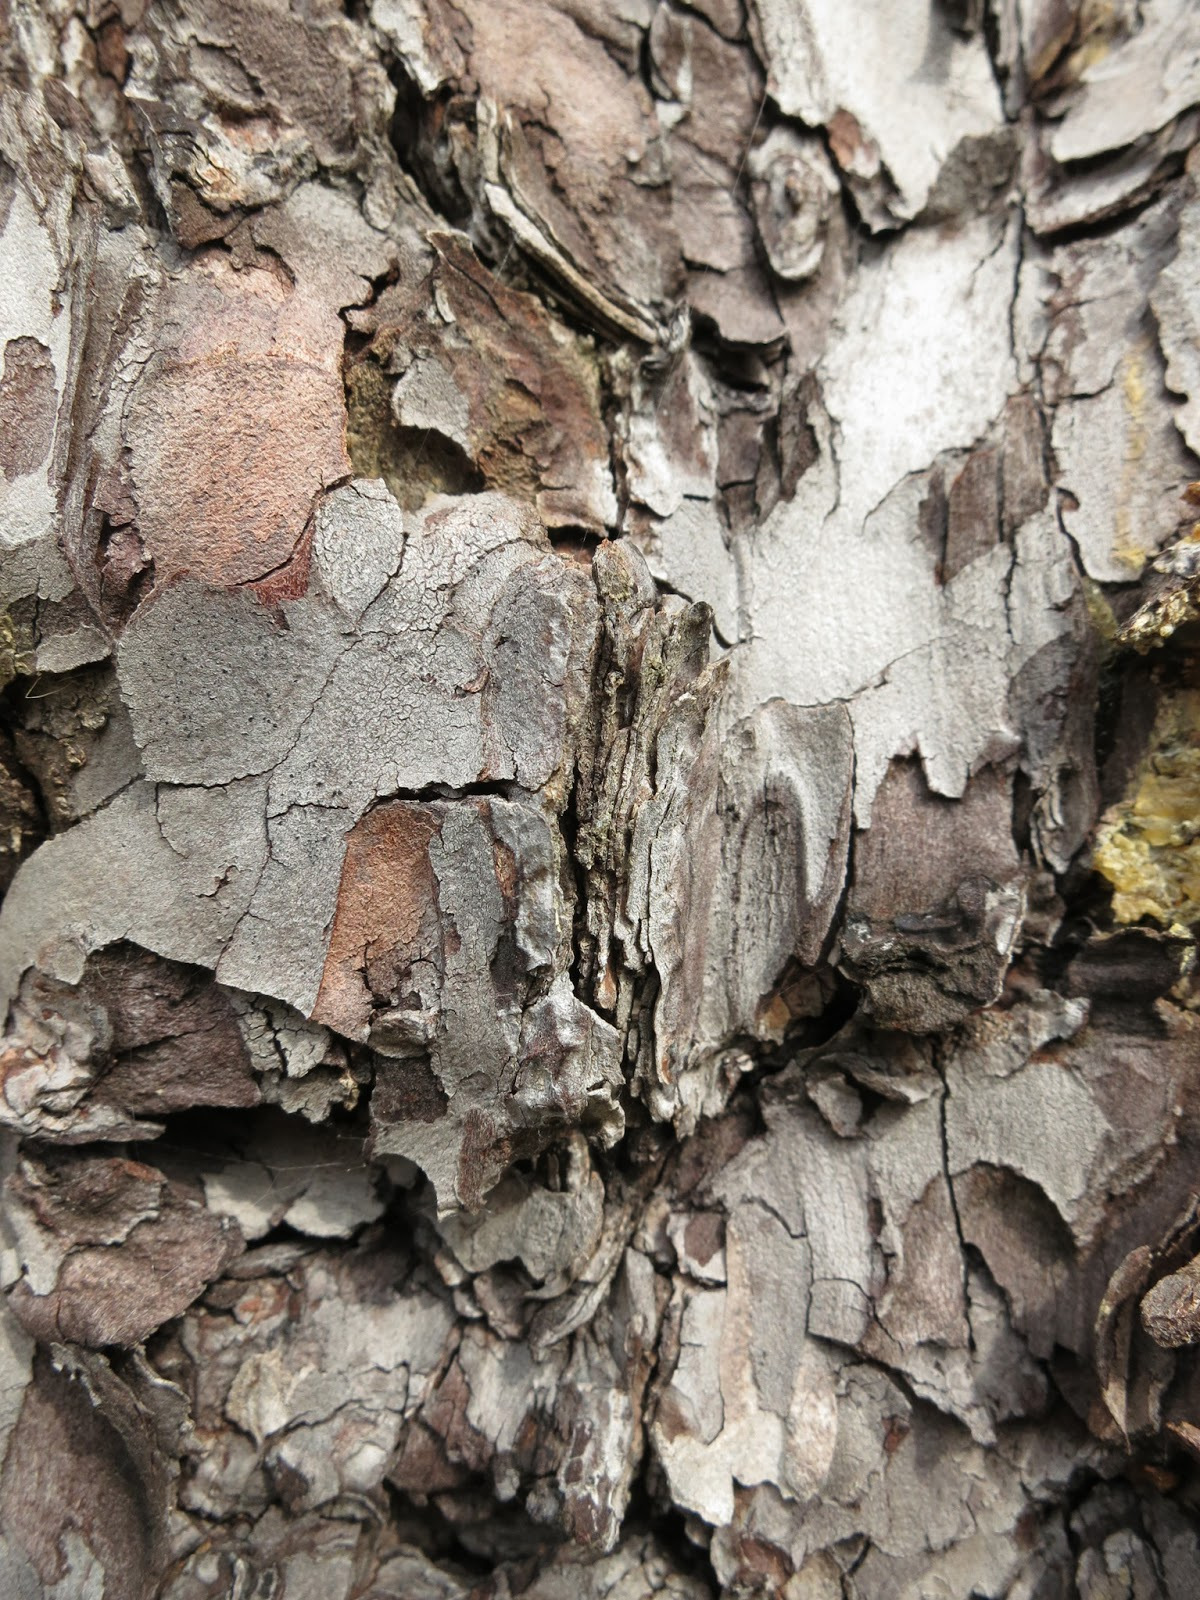 Multi-coloured shapes in bark of tree. (Pine?)